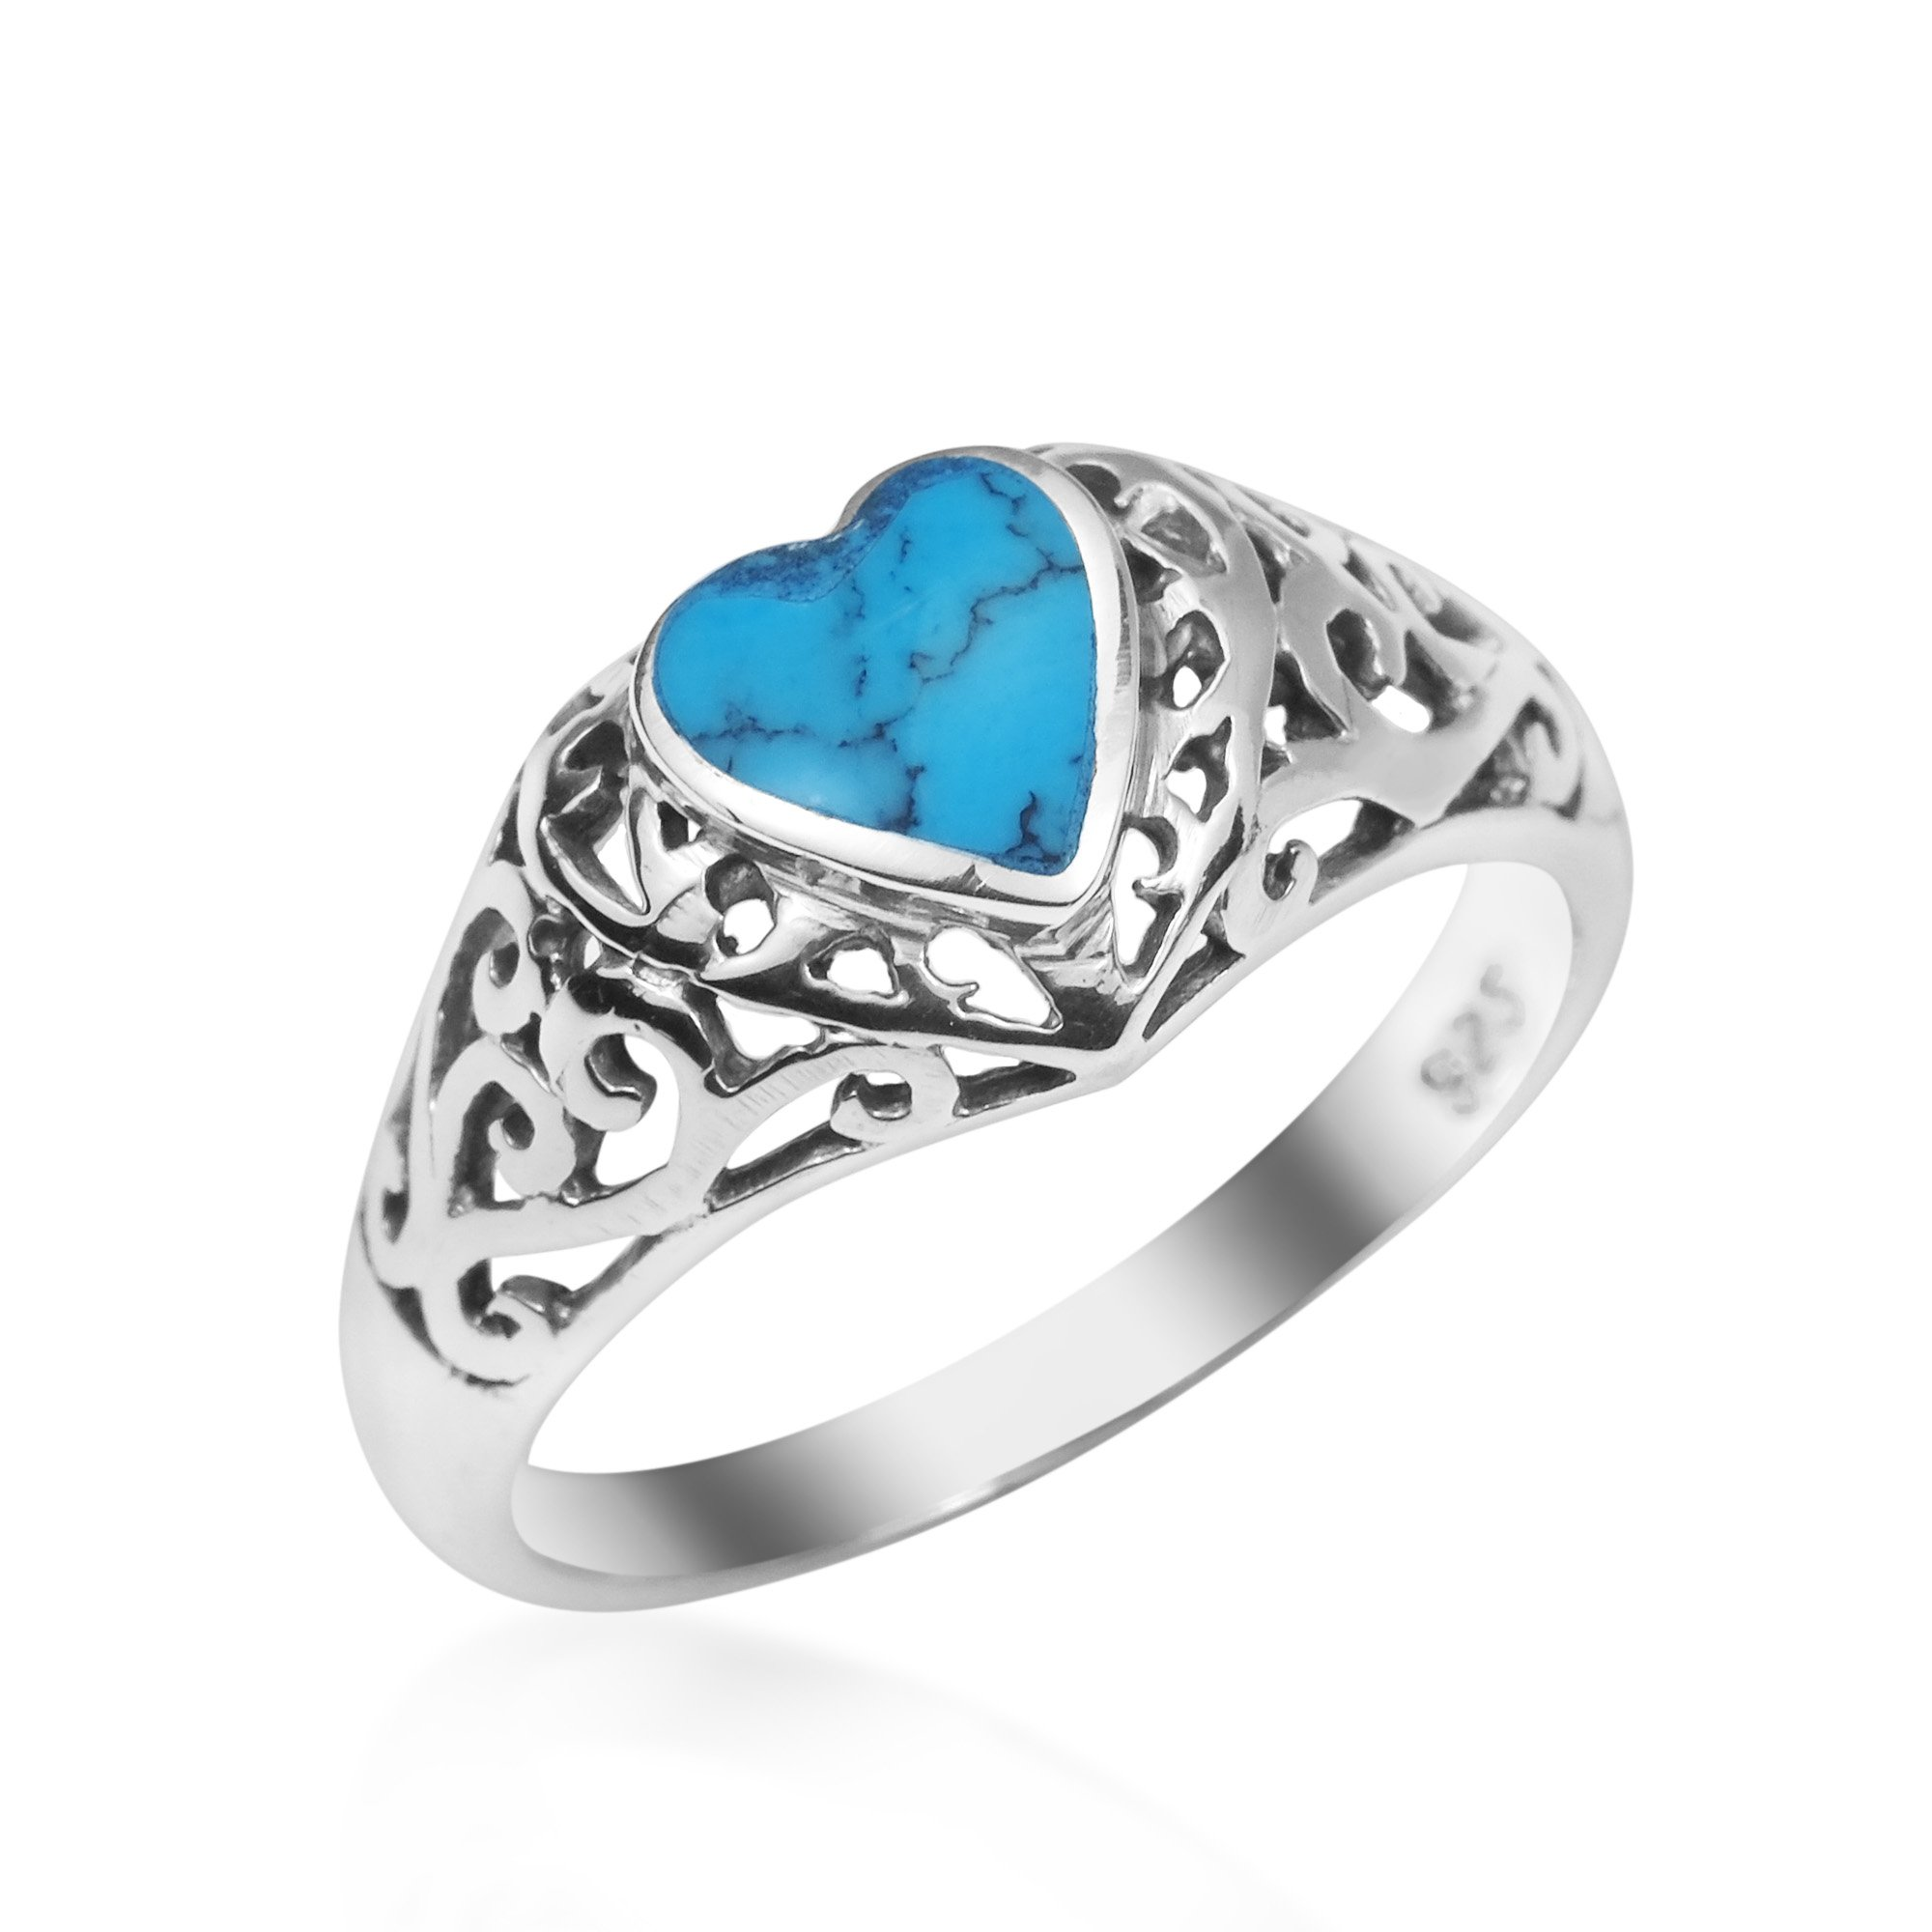 AeraVida True Devotion Simulated Turquoise Heart .925 Sterling Silver Ring (9)